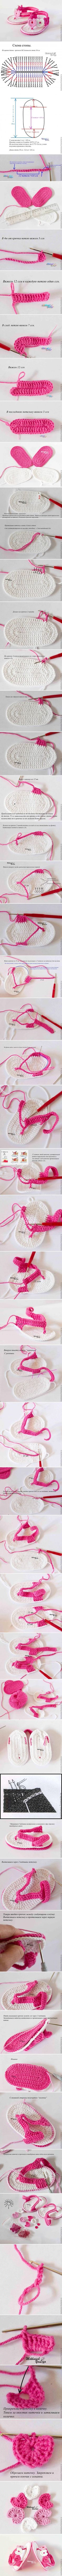 DIY Adorable Crochet Baby Sandals | iCreativeIdeas.com LIKE Us on Facebook ==> https://www.facebook.com/icreativeideas